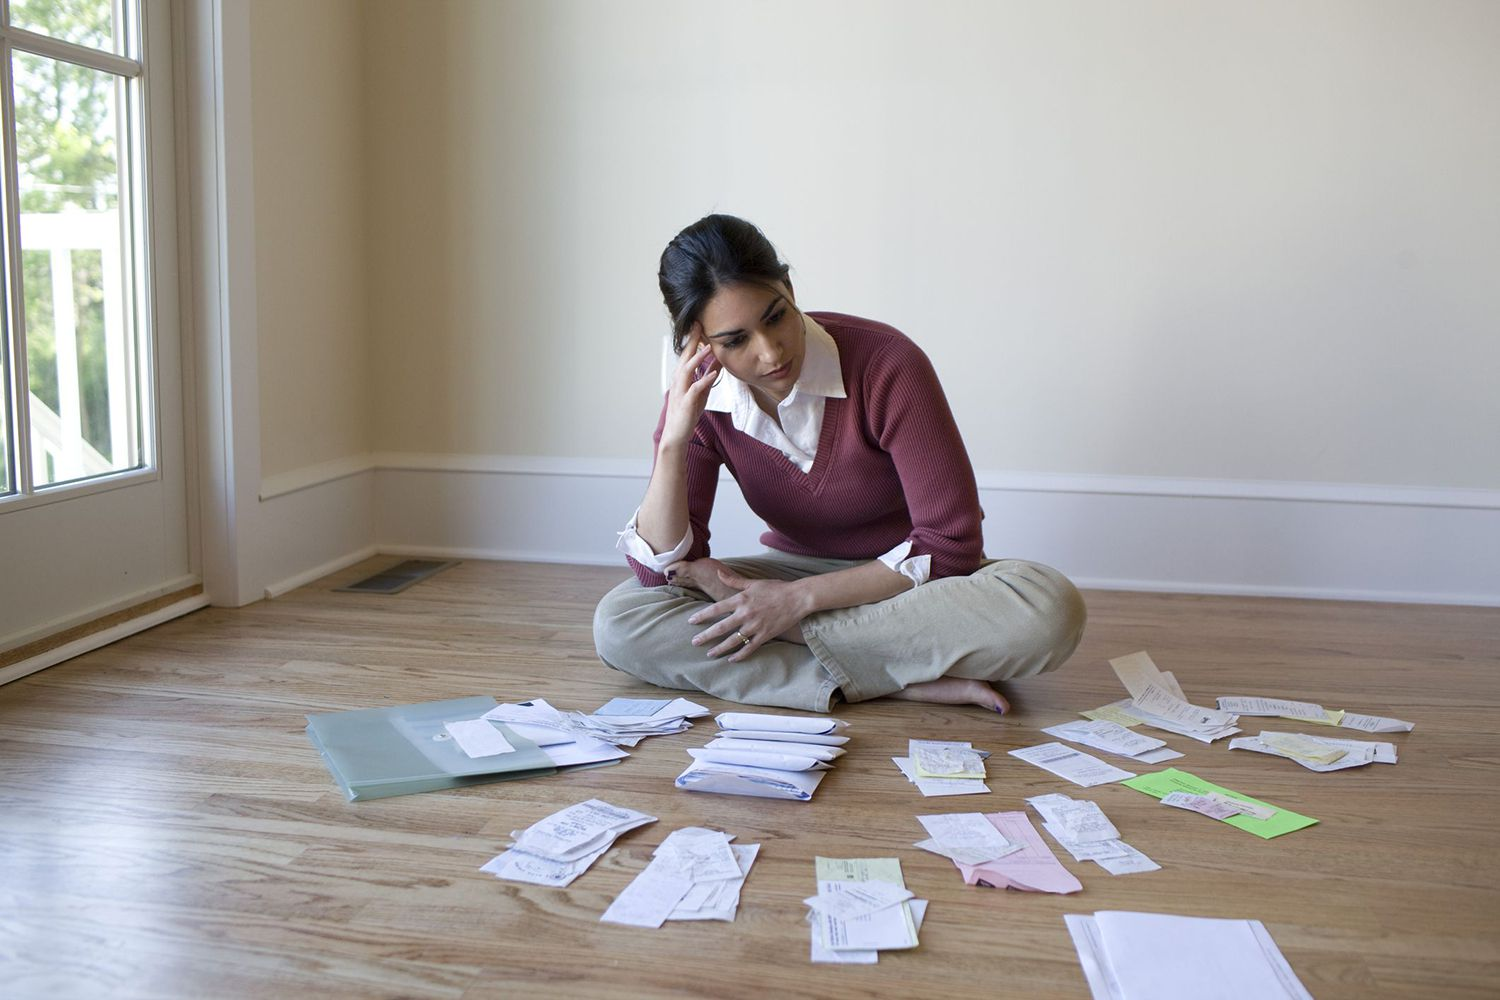 A Woman Sitting on a Hardwood Floor Surrounded by Bills